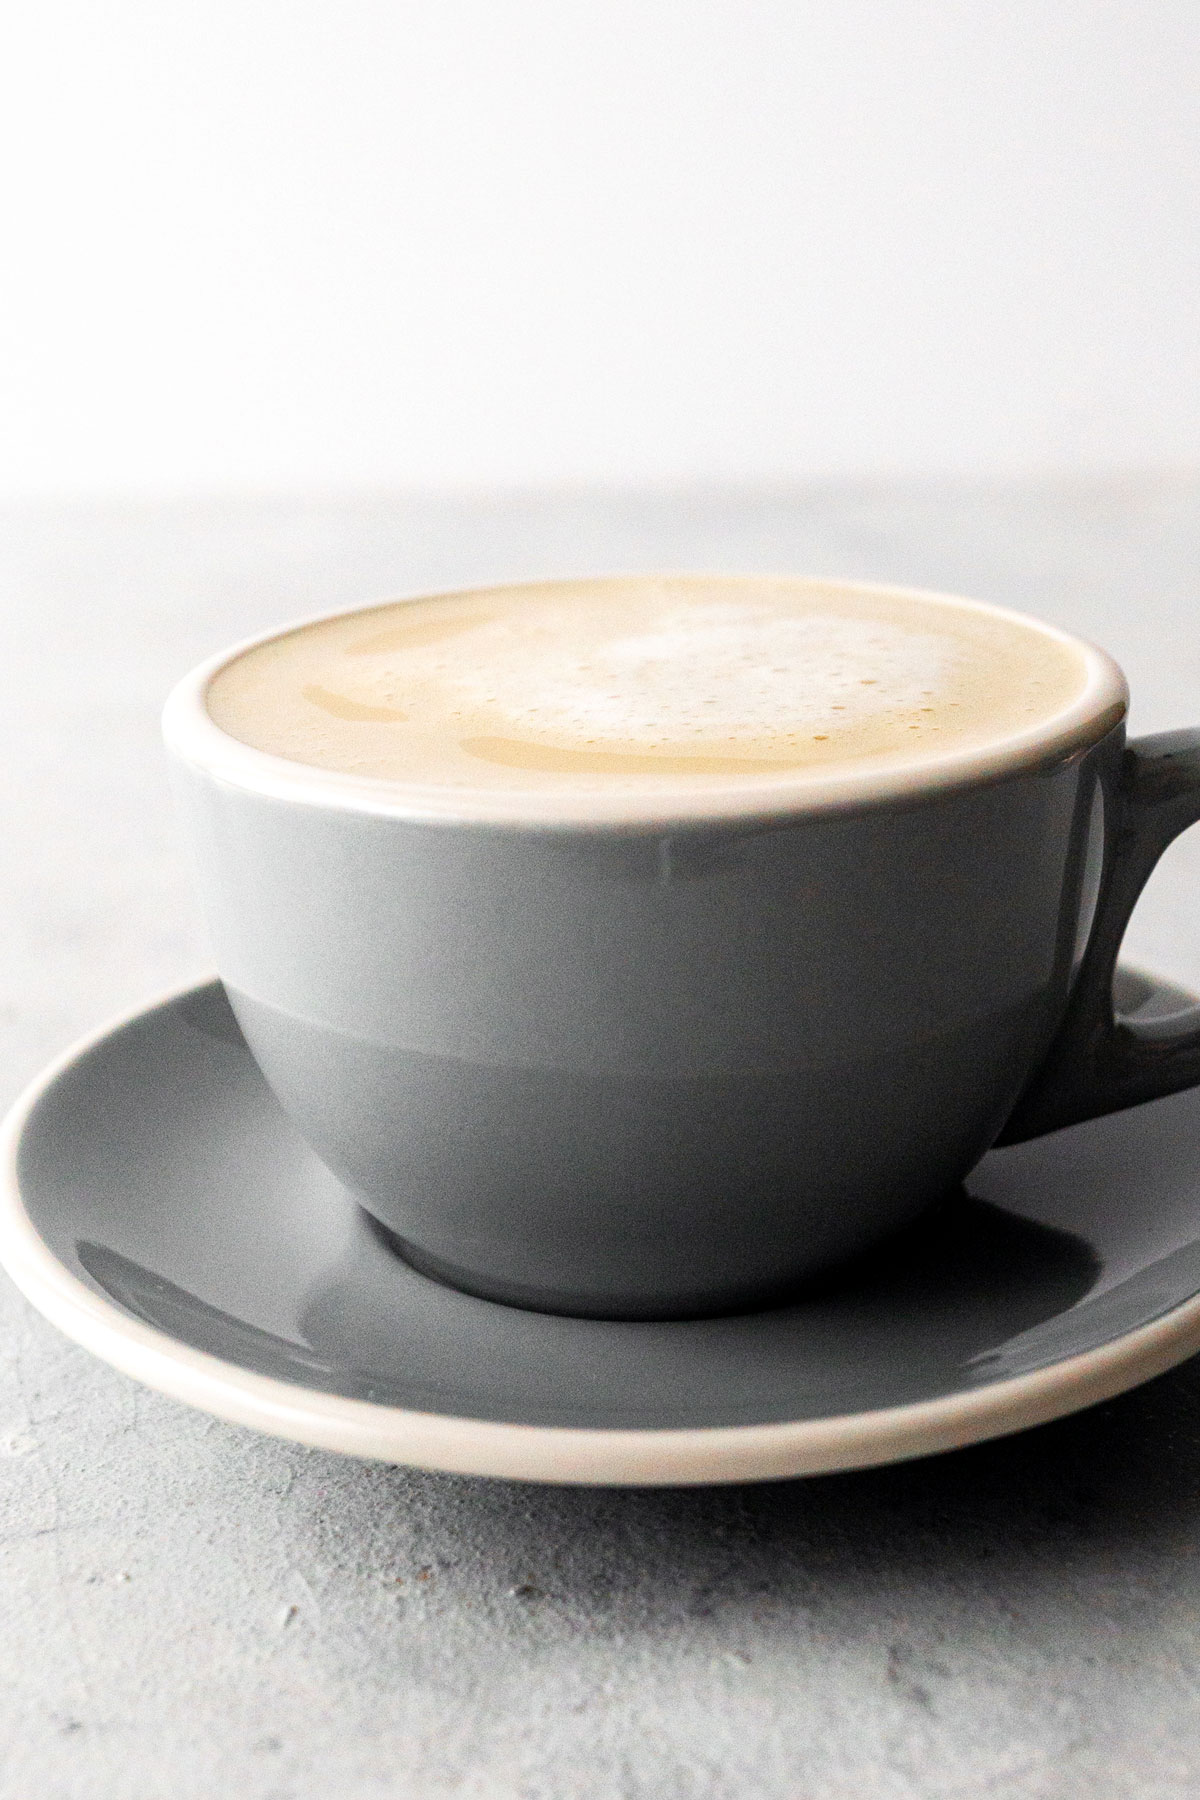 Cafe au lait in a gray mug with saucer.